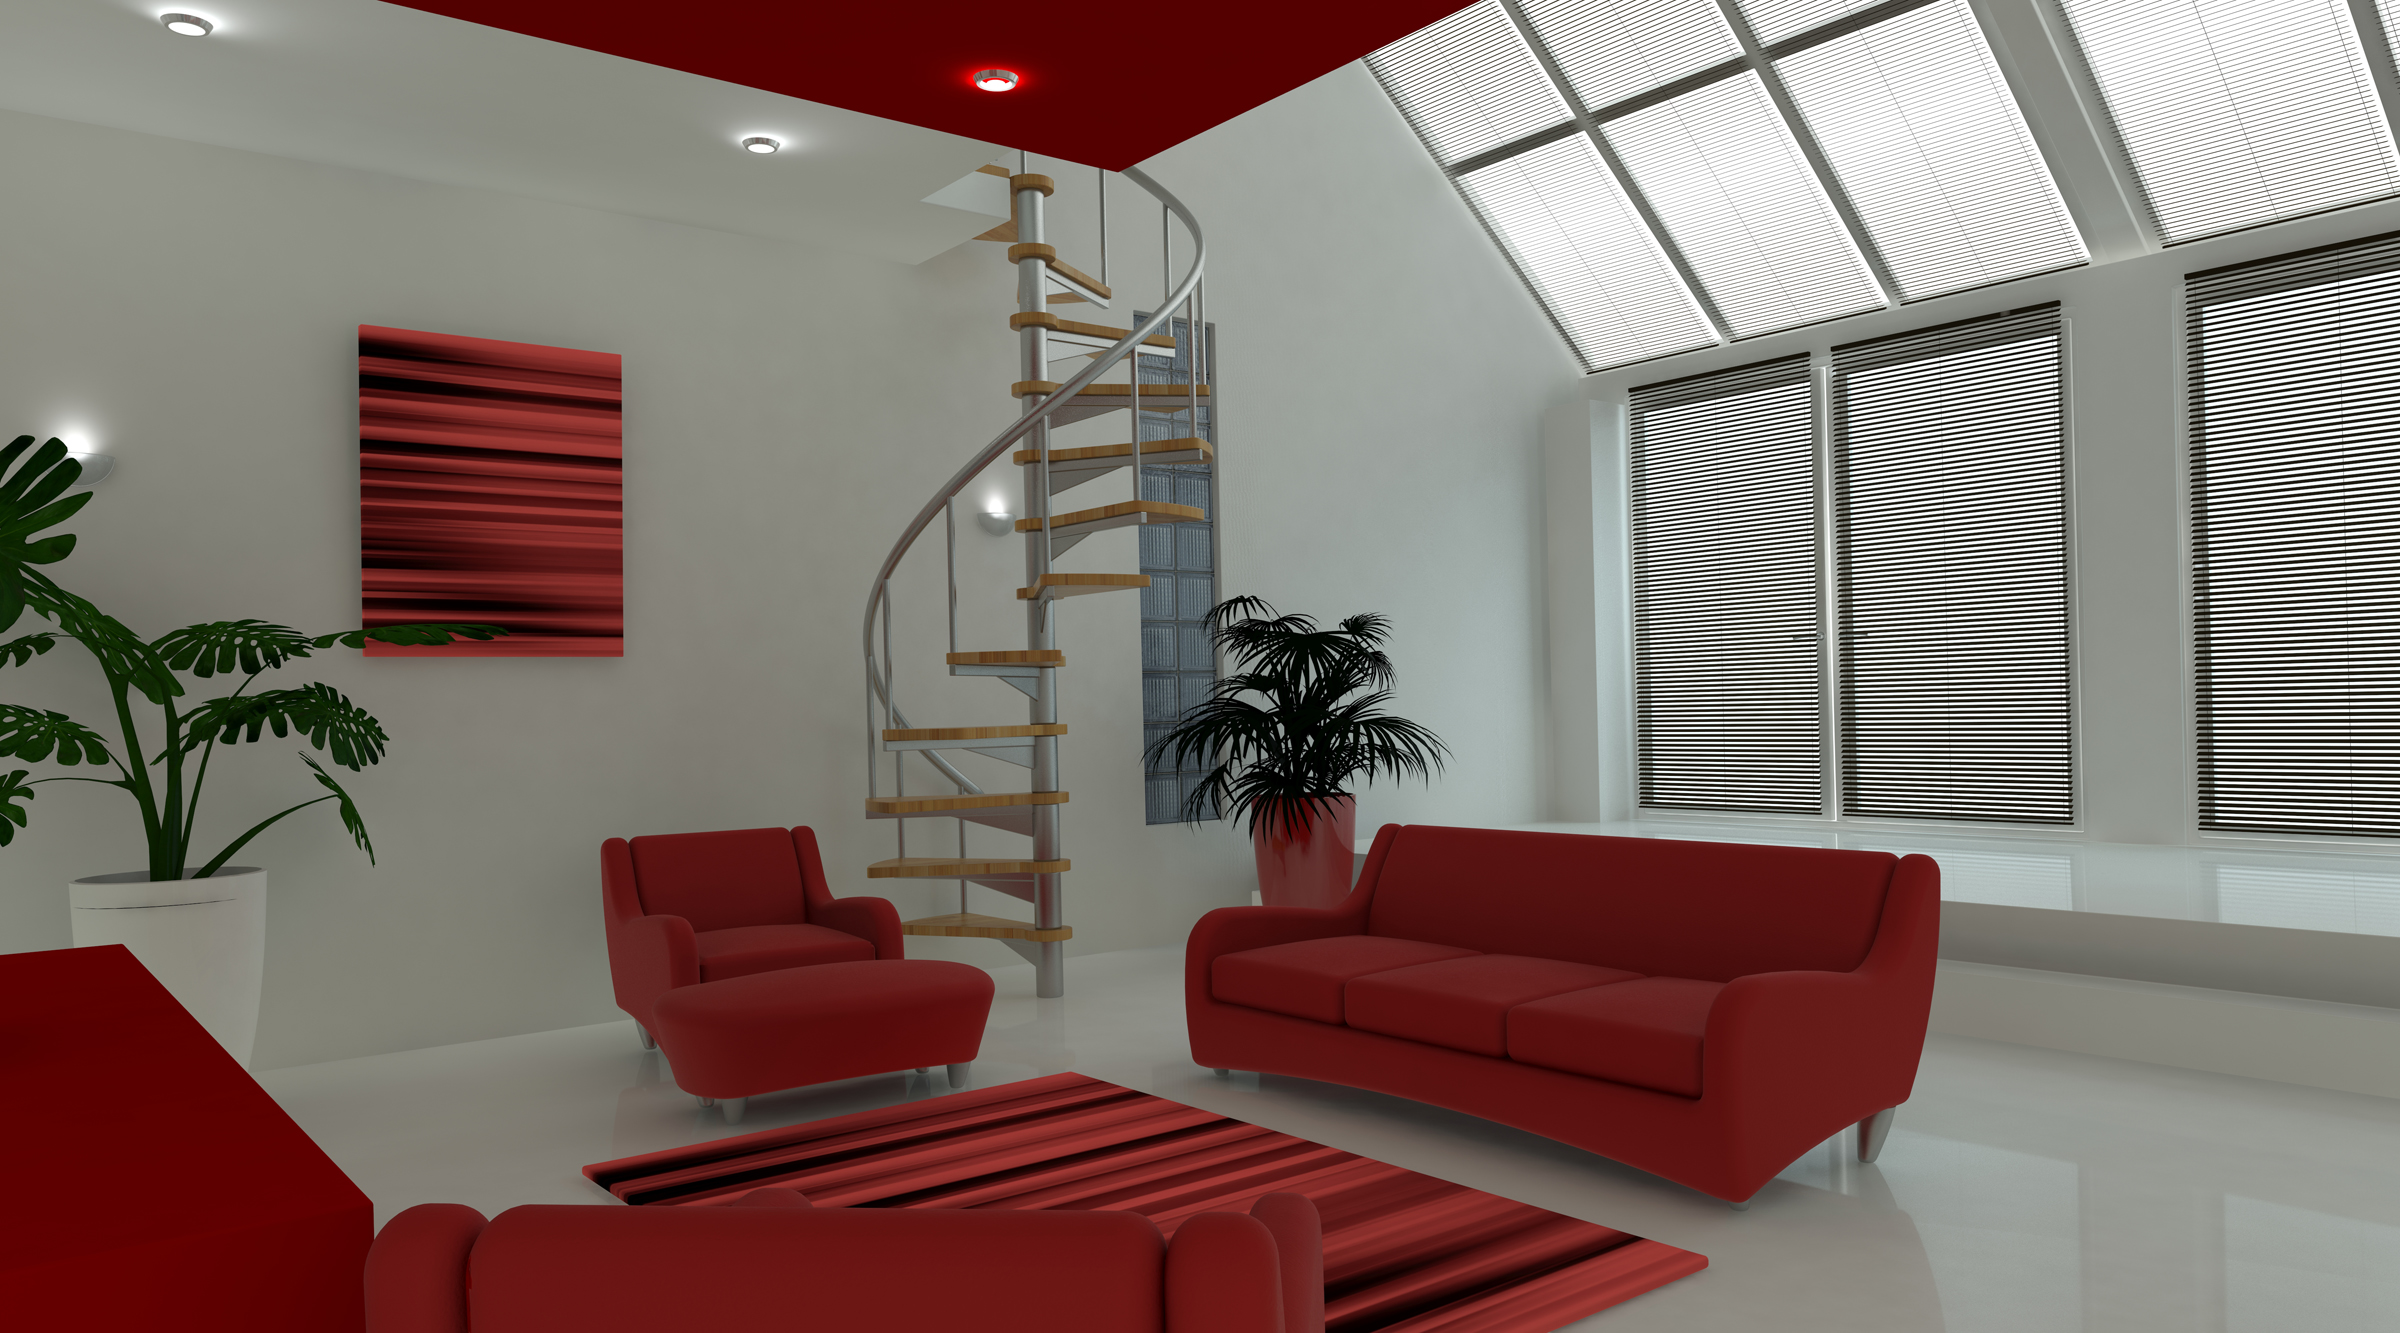 3d design of a room with stairs interior design marbella Room builder